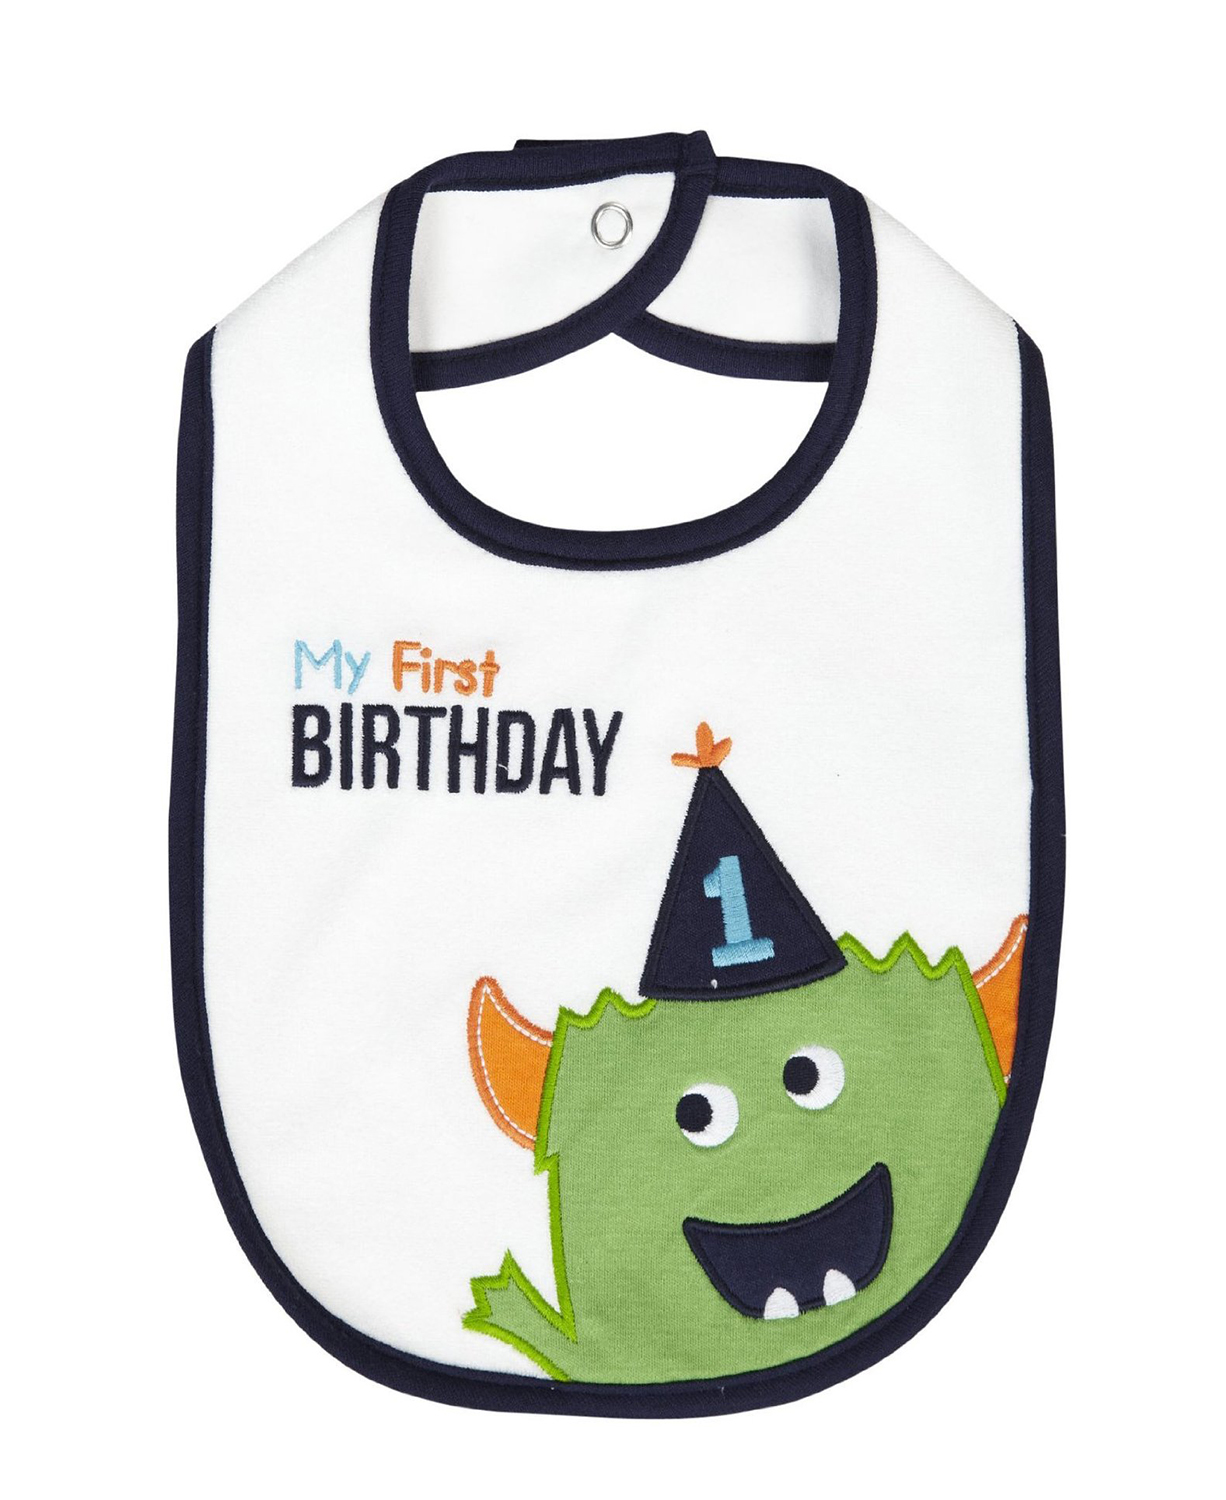 Carter S My First Birthday Green Monster 1st Birthday Baby Bib Baby Clothes Baby Clothing Baby Boy Clothes Baby Girl Clothes Cheap Name Brand Clothes For Kids Toddler Name Brand Clothes Cheap Name Brand